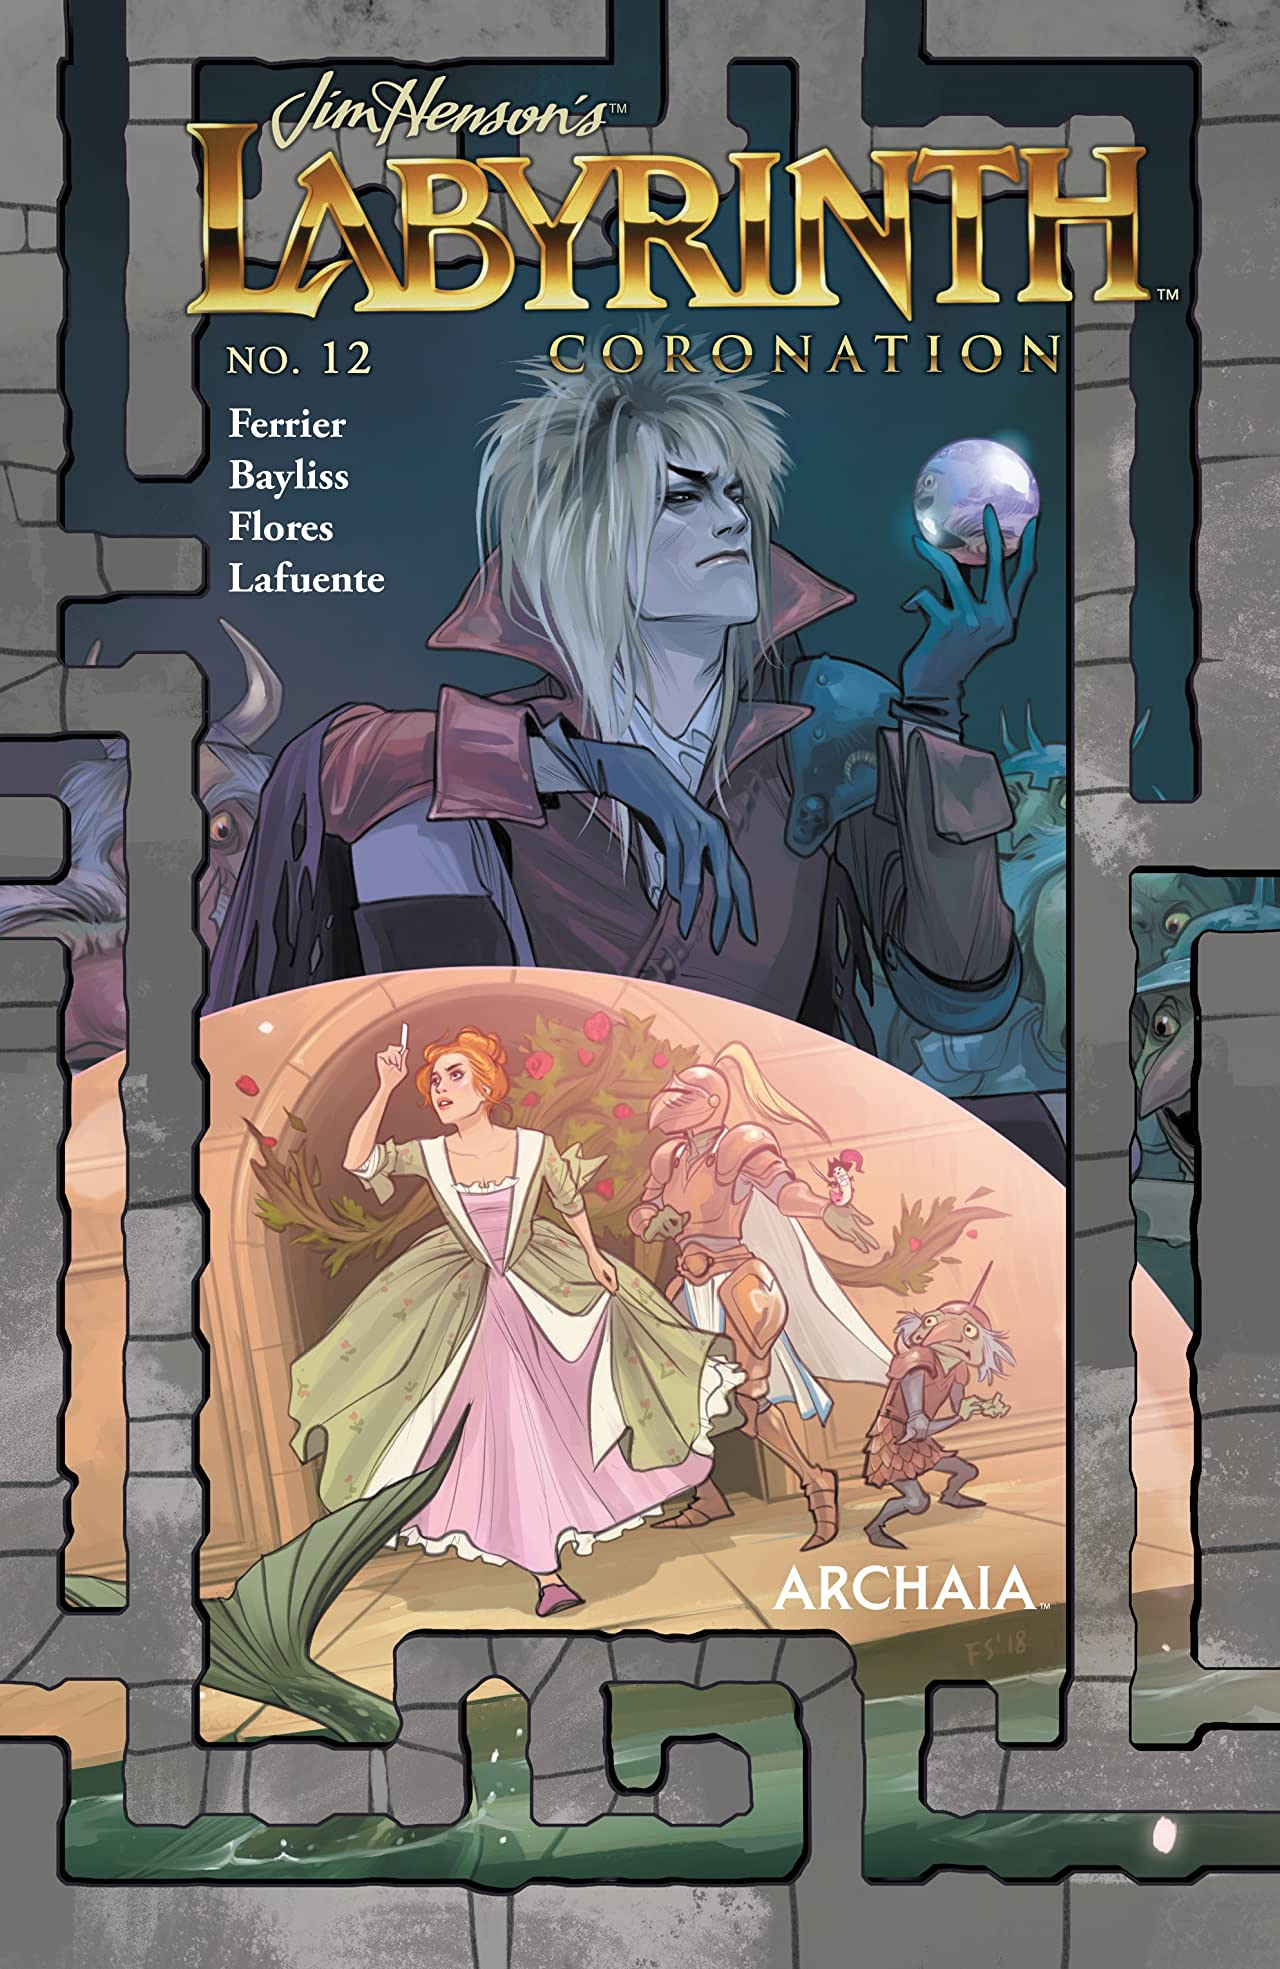 Jim Henson's Labyrinth: Coronation #12